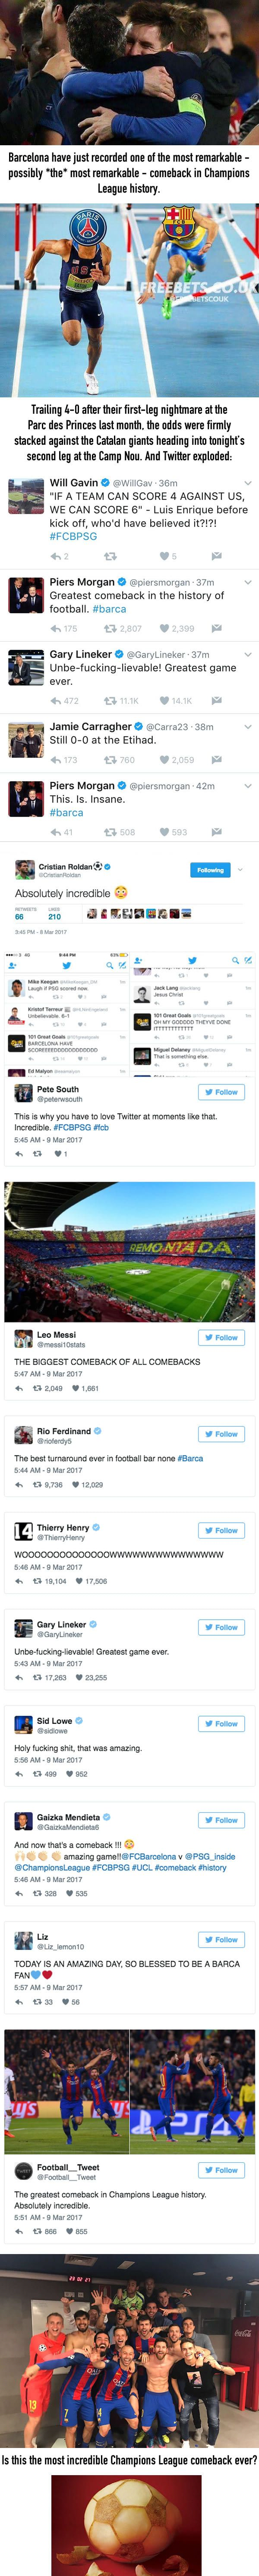 Twitter explodes as Barcelona beat PSG 6-1 in the Champions League